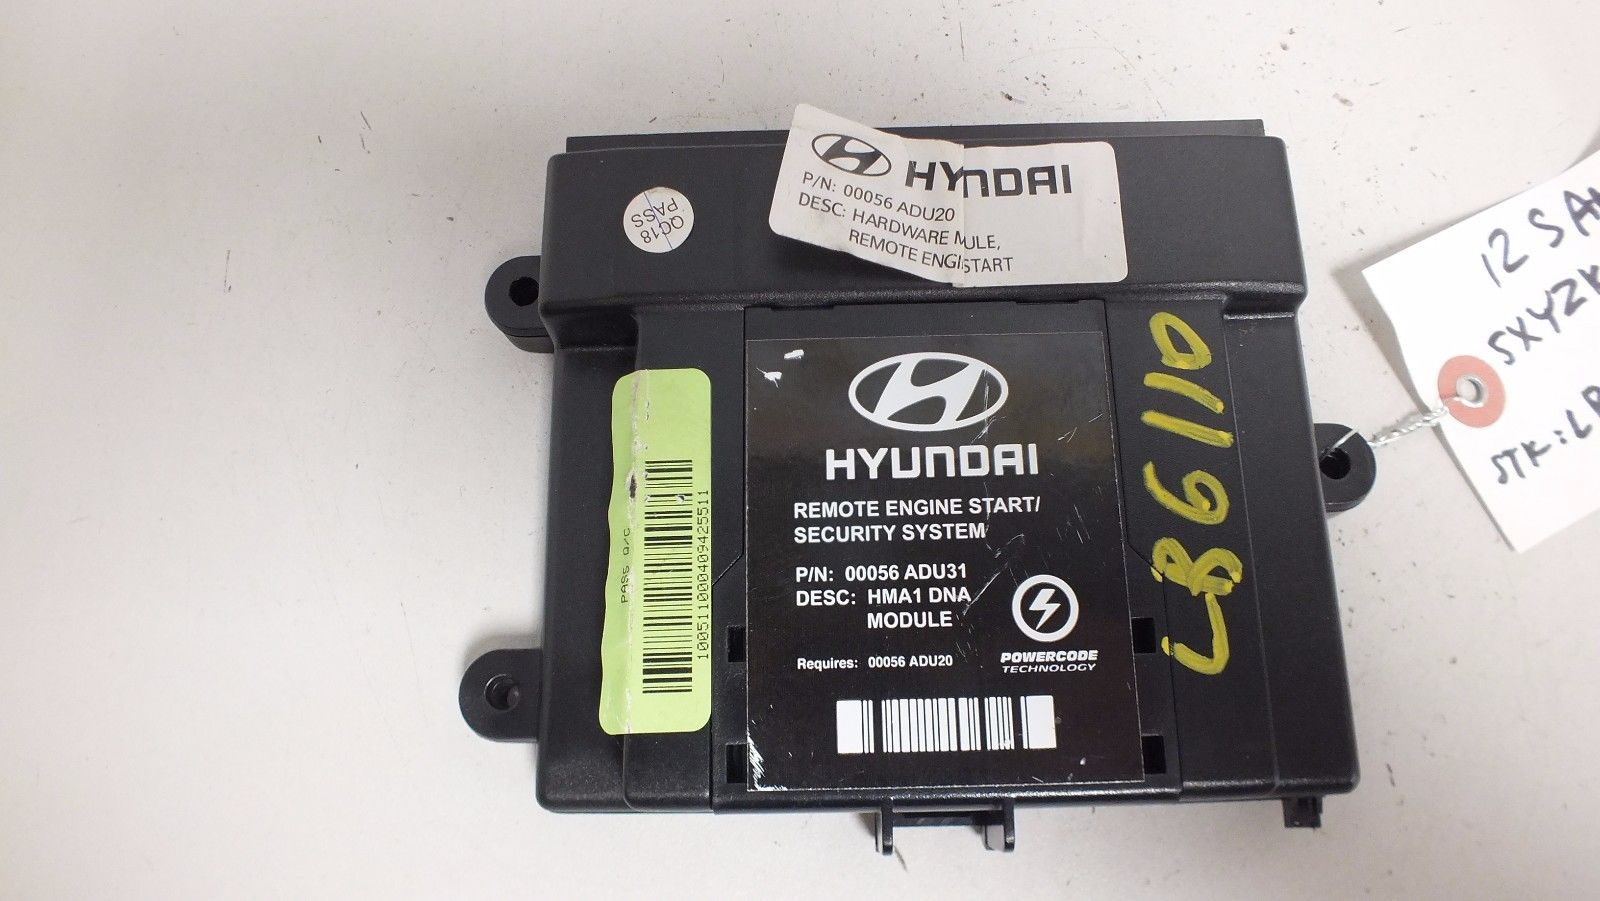 12 2012 hyundai santa fe remote start control module 00056 adu31 1019 00056 adu31. Black Bedroom Furniture Sets. Home Design Ideas